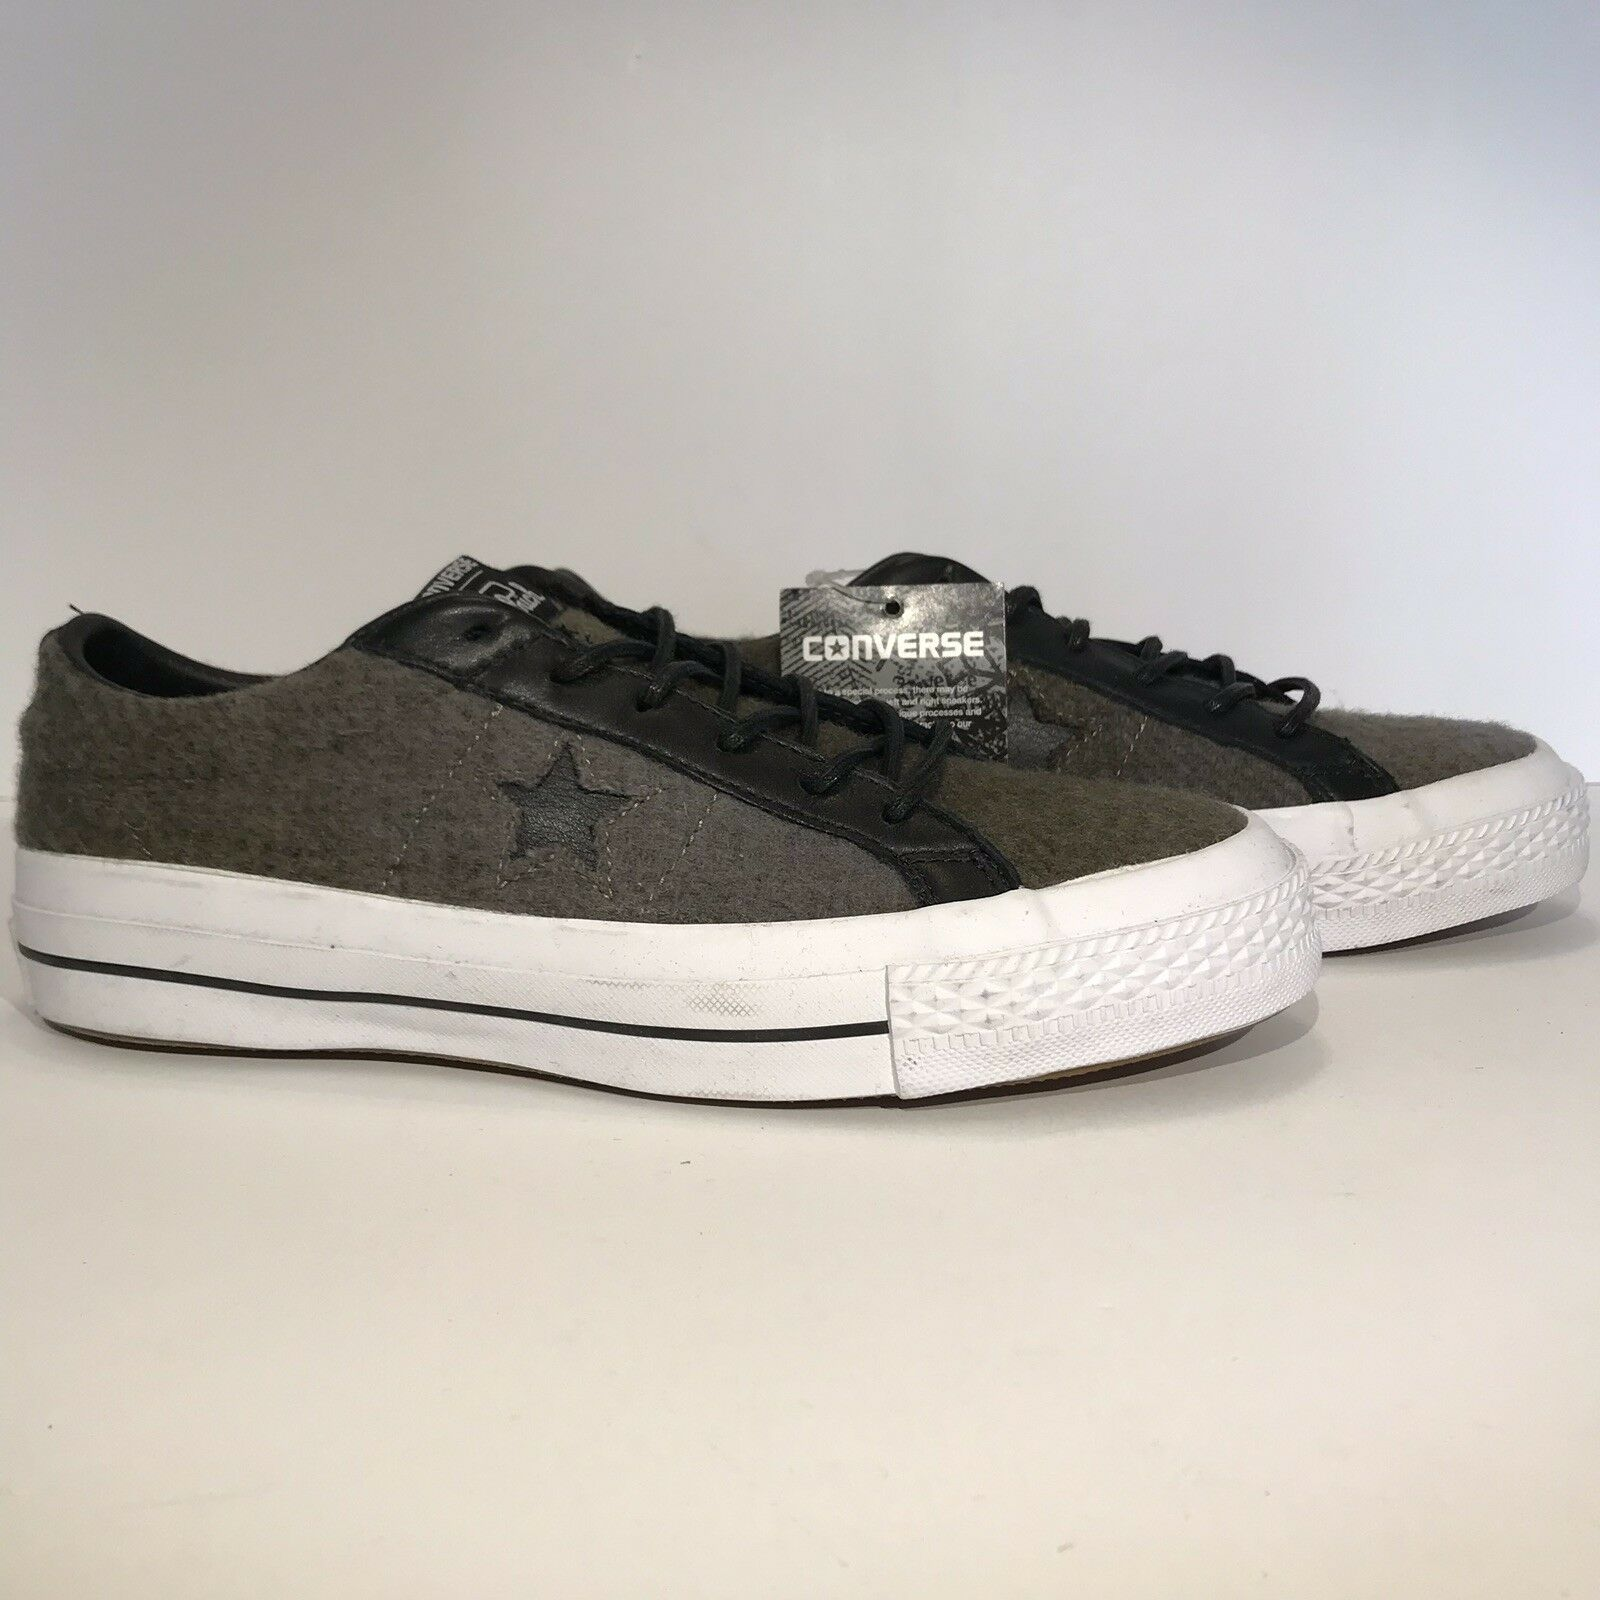 New Converse One Star Woolrich Ox 154036c Men shoes Size 5 Jute Herbal Black